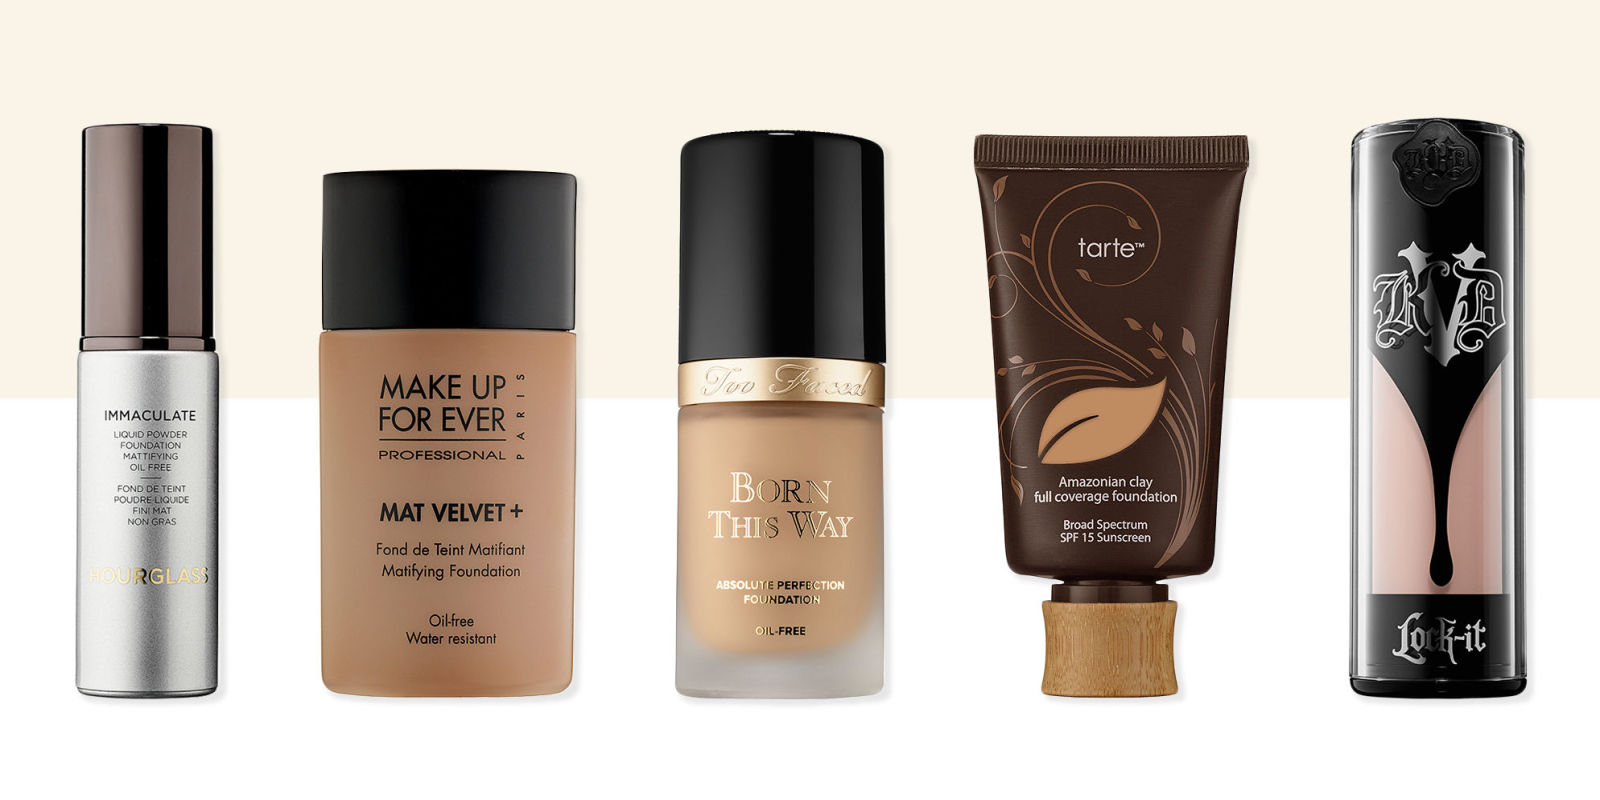 9 Best Foundations For Dry Skin In 2017